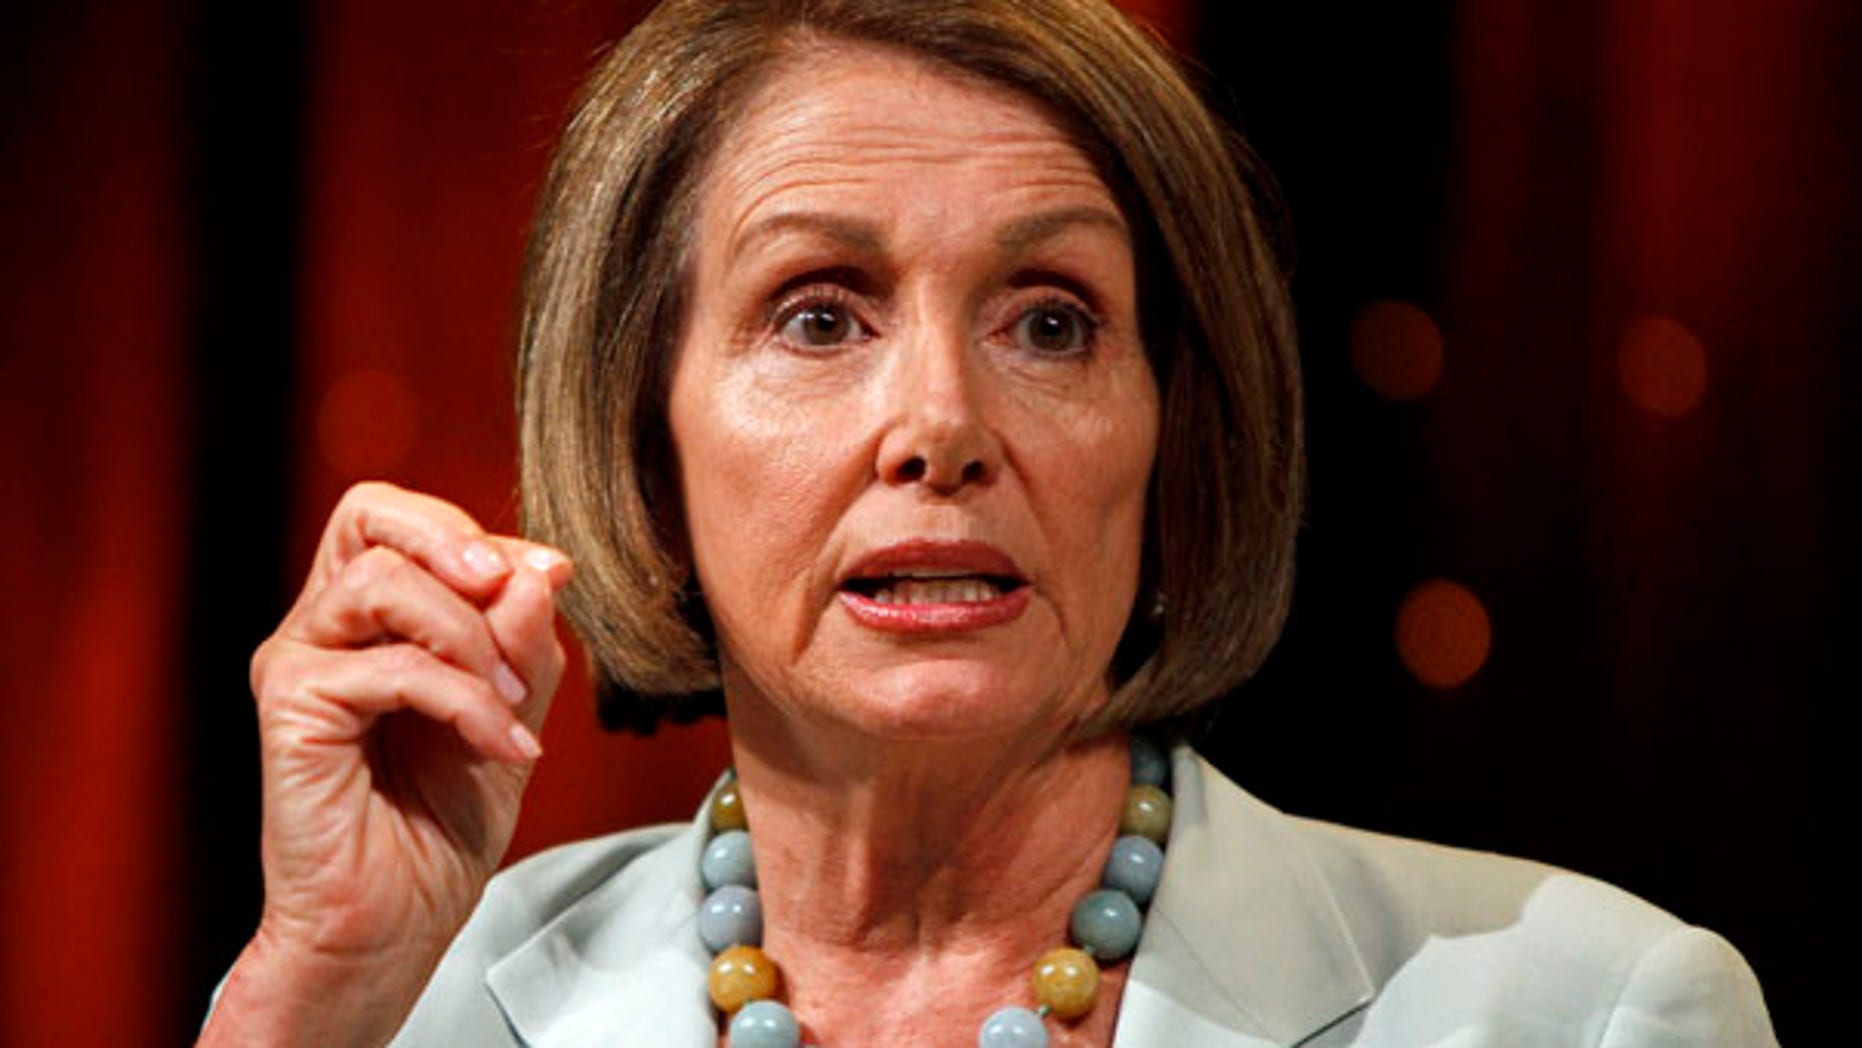 File photo - House Speaker Nancy Pelosi, D-Calif., answers questions during a Netroots Nation convention in Las Vegas on Saturday, July 24, 2010. (AP Photo/Louie Traub)